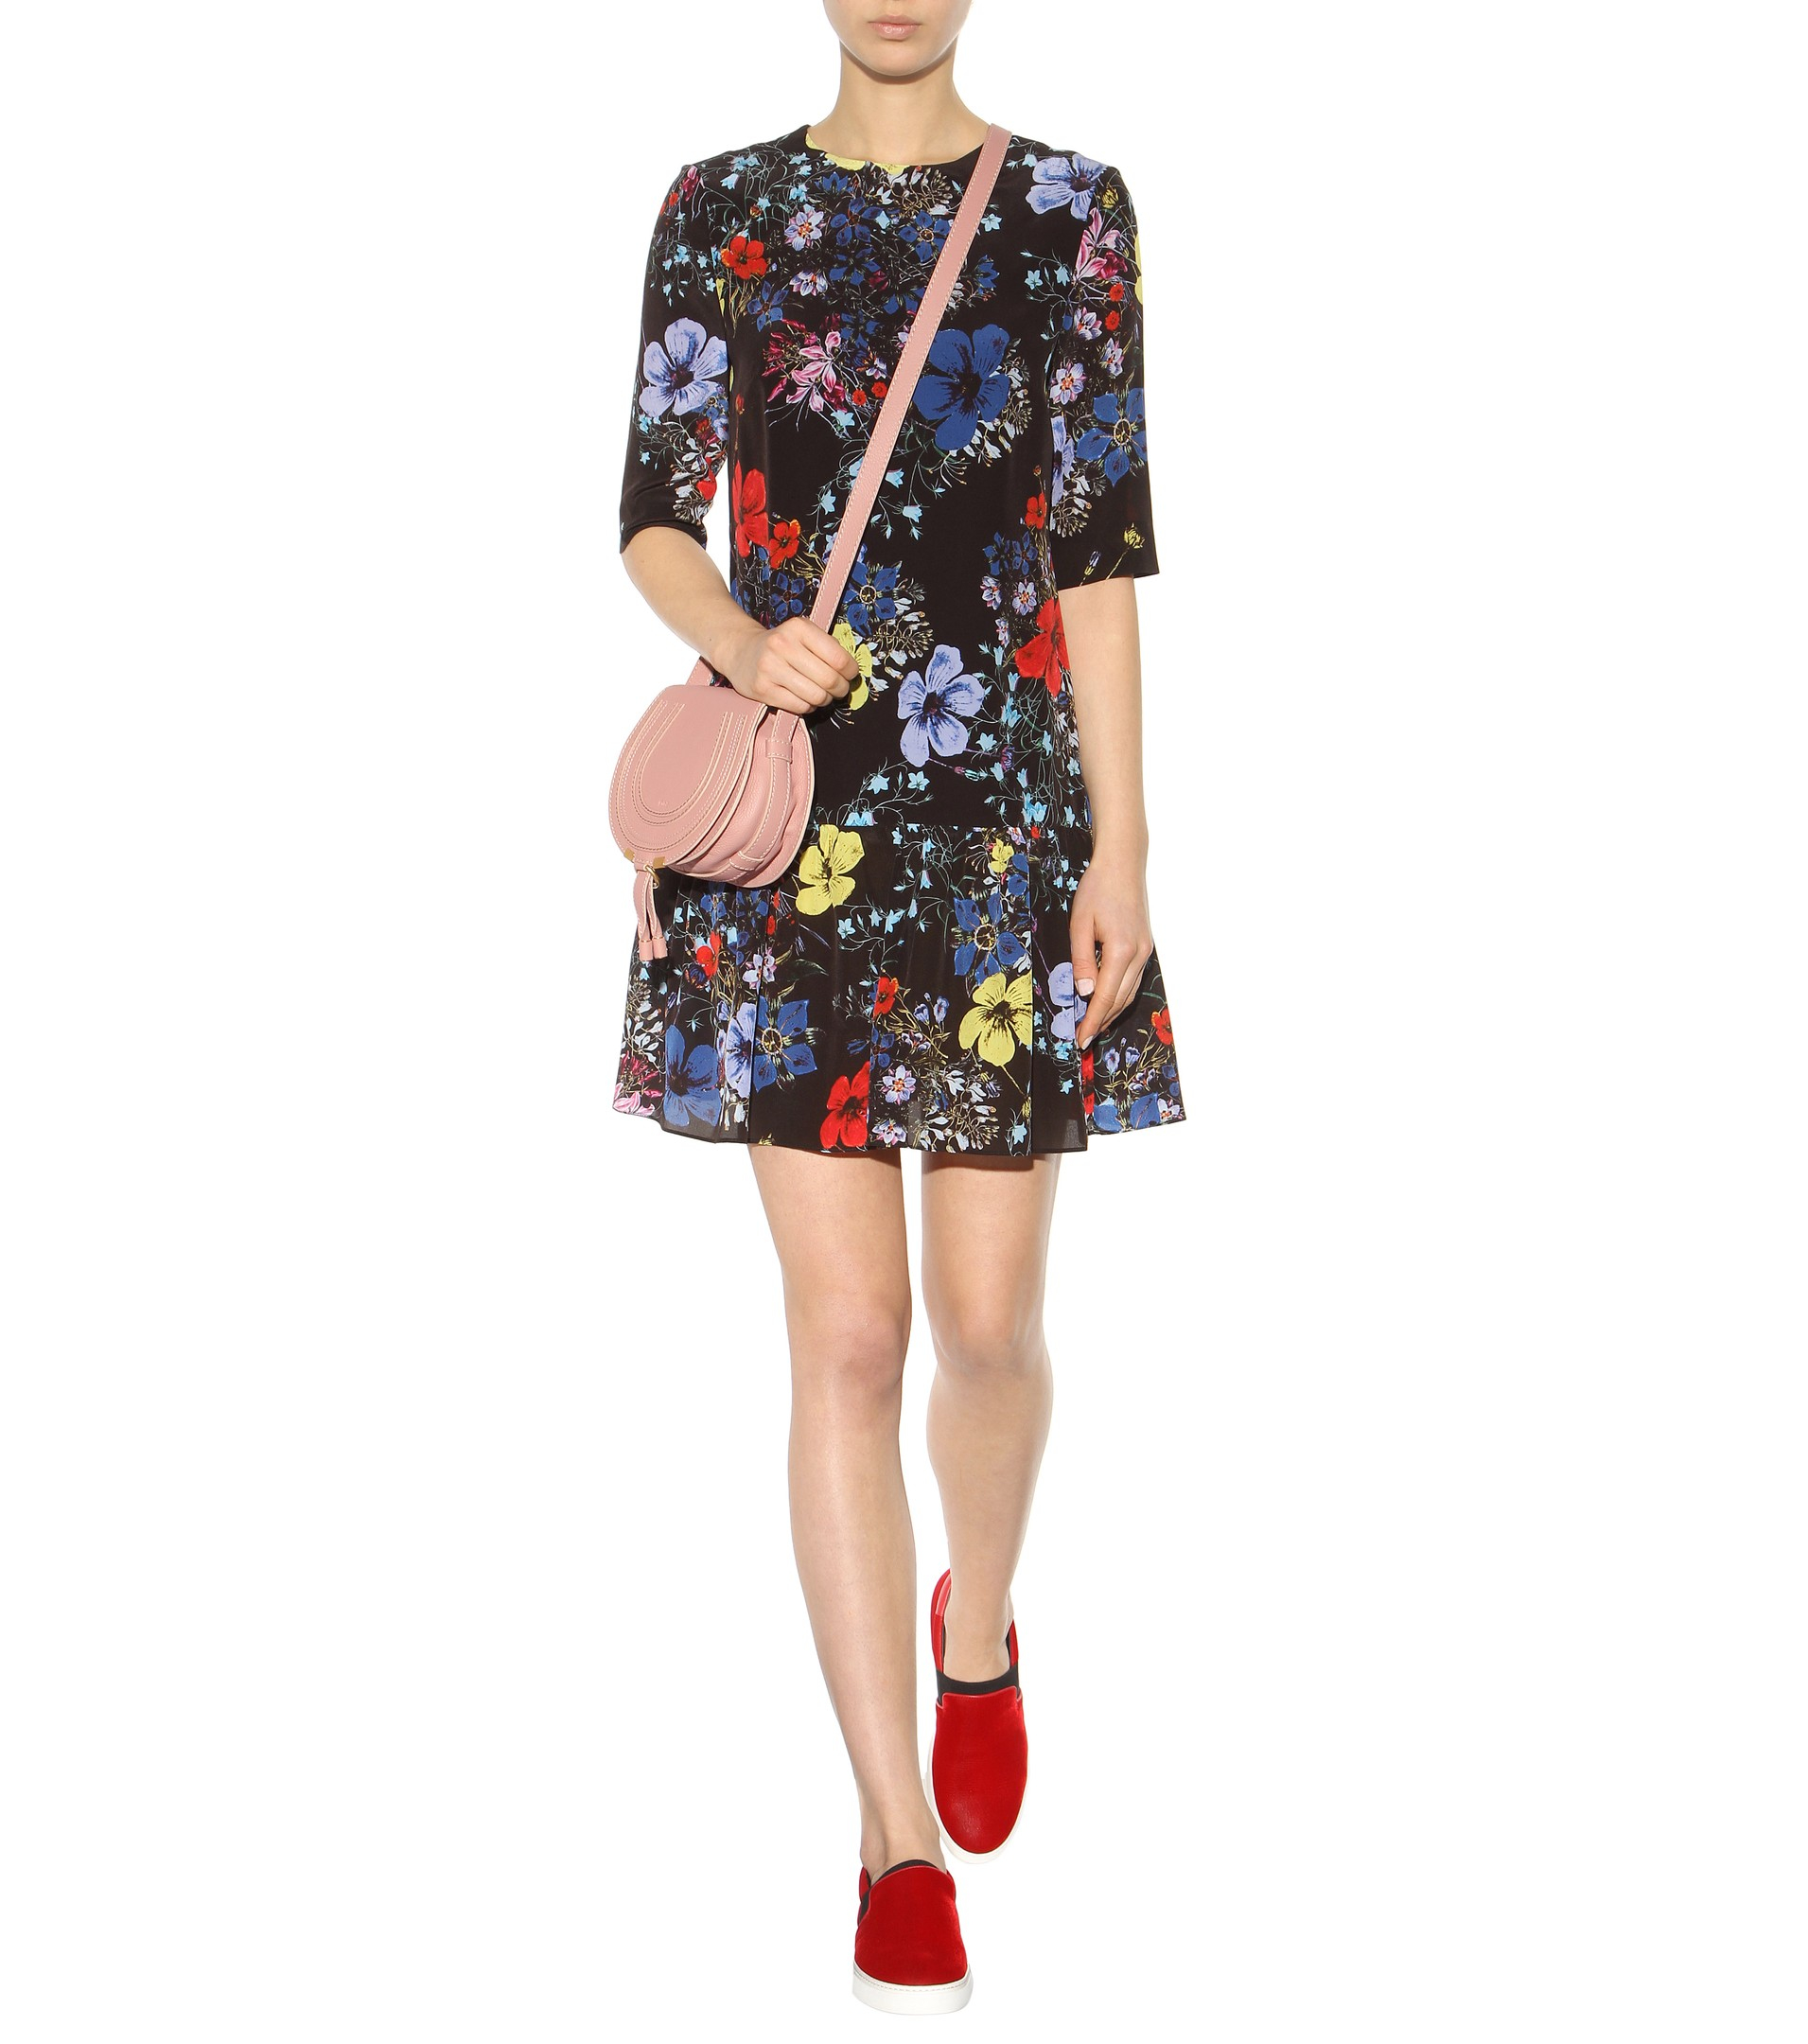 chloe red bag - Chlo�� Marcie Small Leather Shoulder Bag in Pink (Anemone Pink) | Lyst